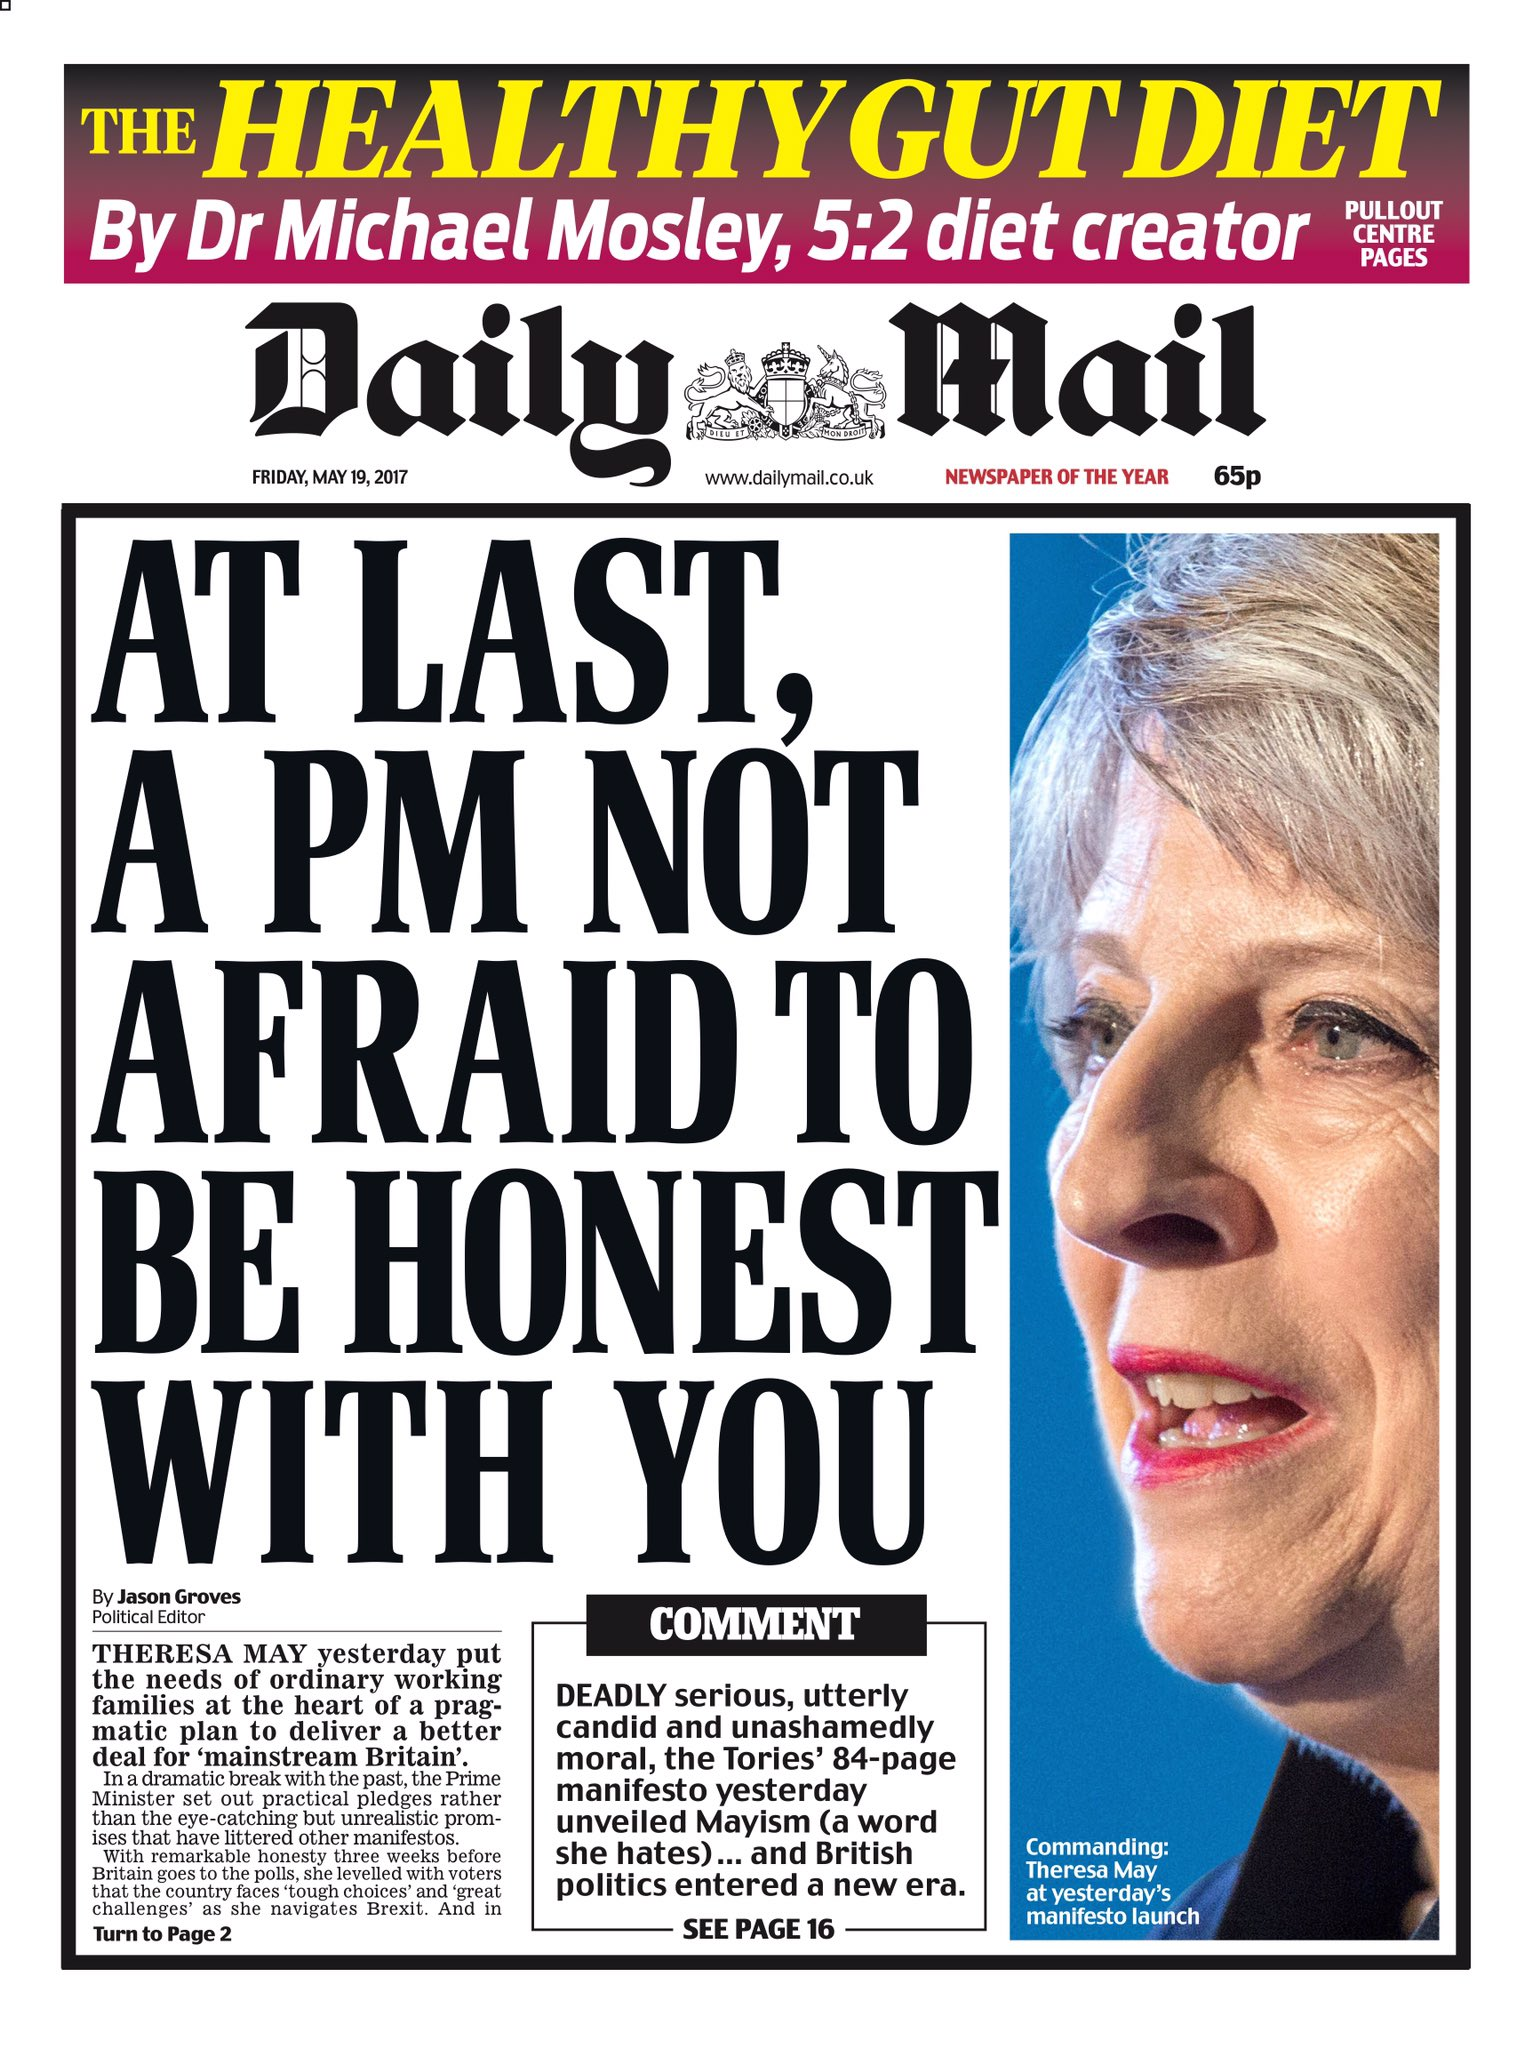 FRIDAY'S DAILY MAIL: 'At last, a PM not afraid to be honest with you' #tomorrowspaperstoday #bbcpapers  https://t.co/g5eS3QUKDB